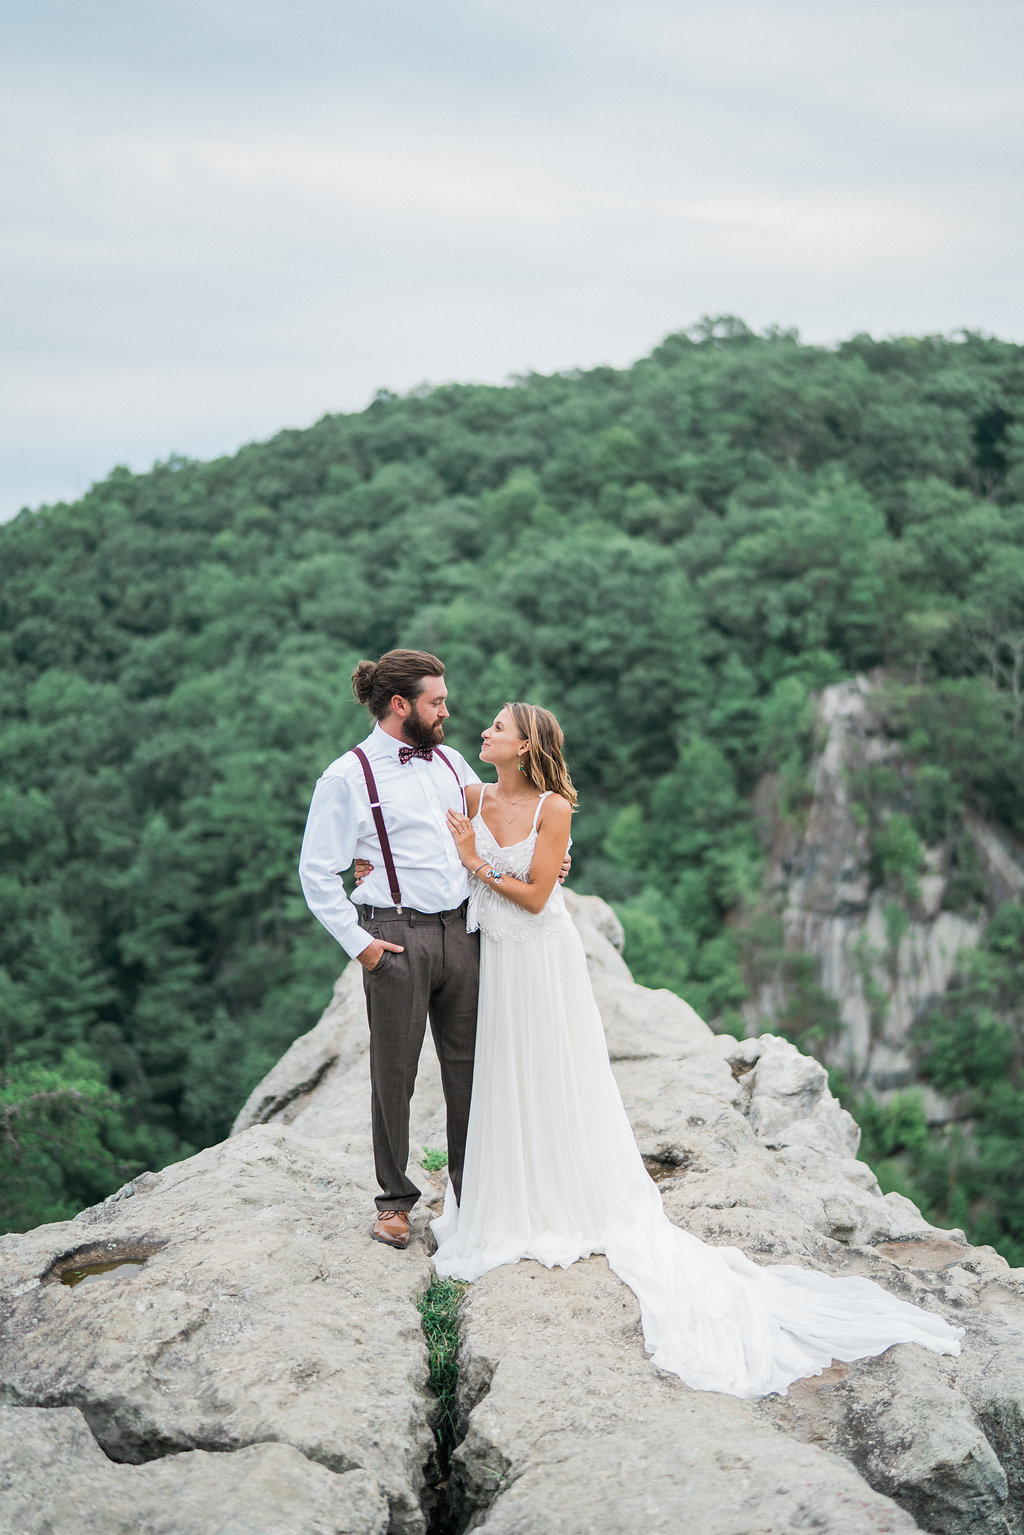 cliffside wedding photography ideas